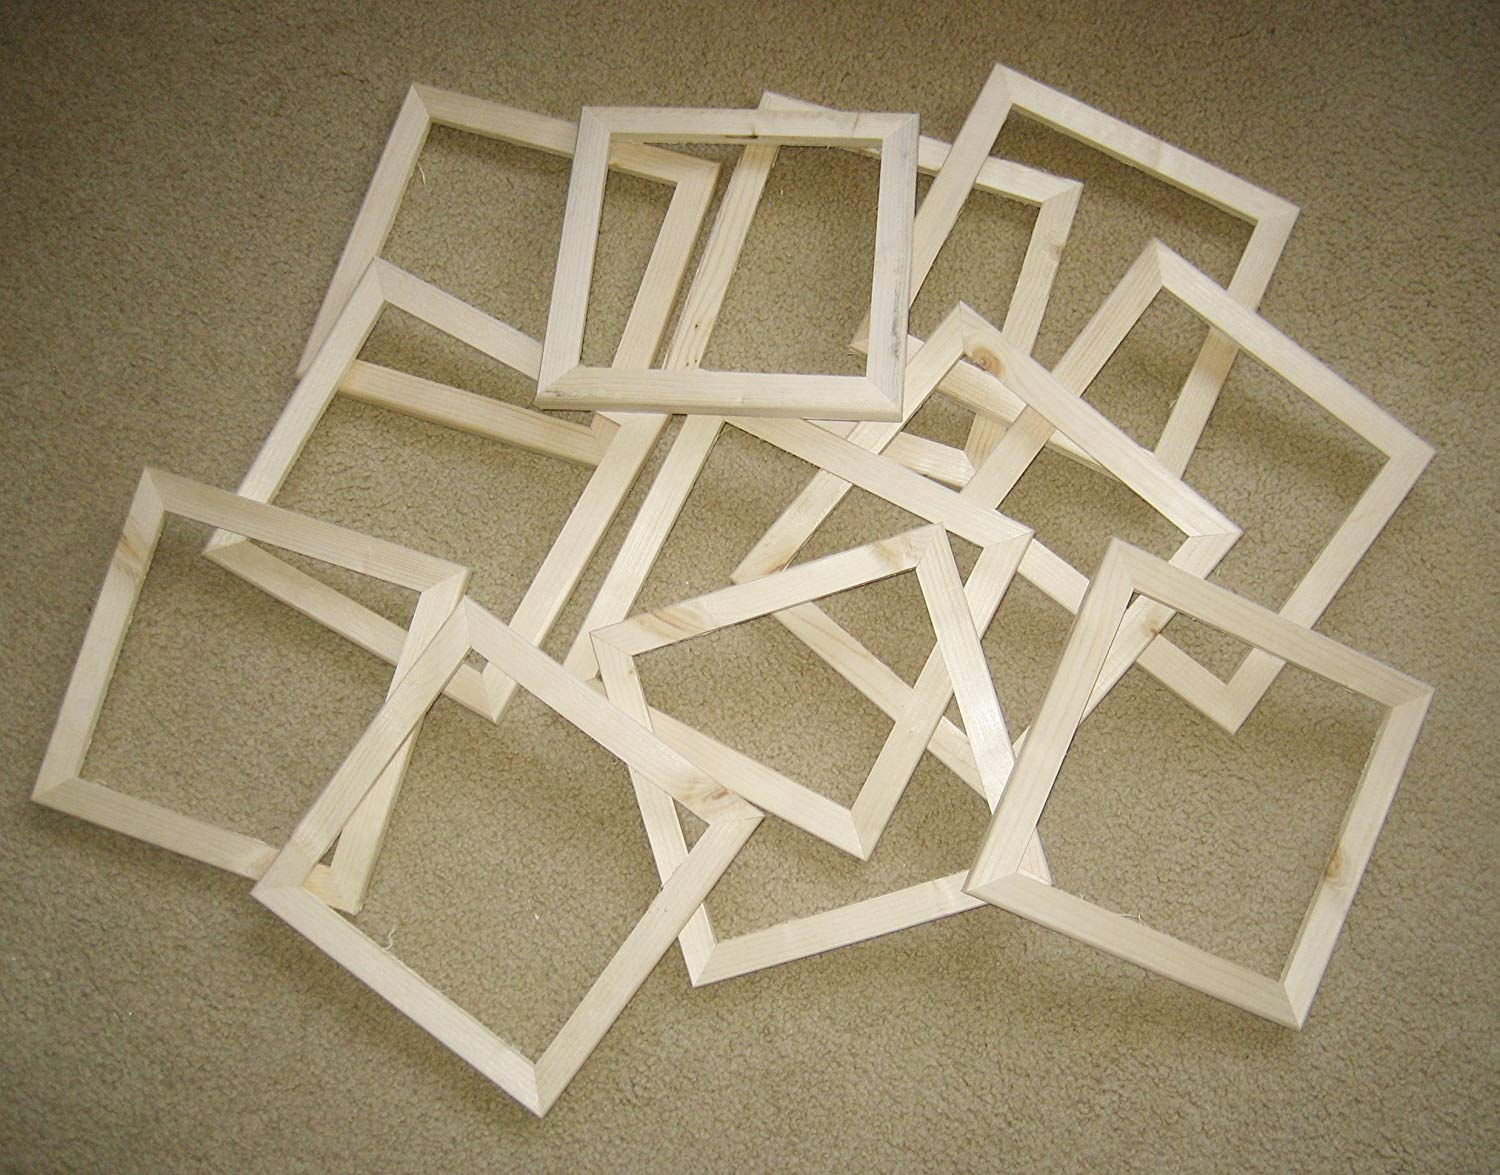 12 unfinished 8x8 rough cut wood picture frames